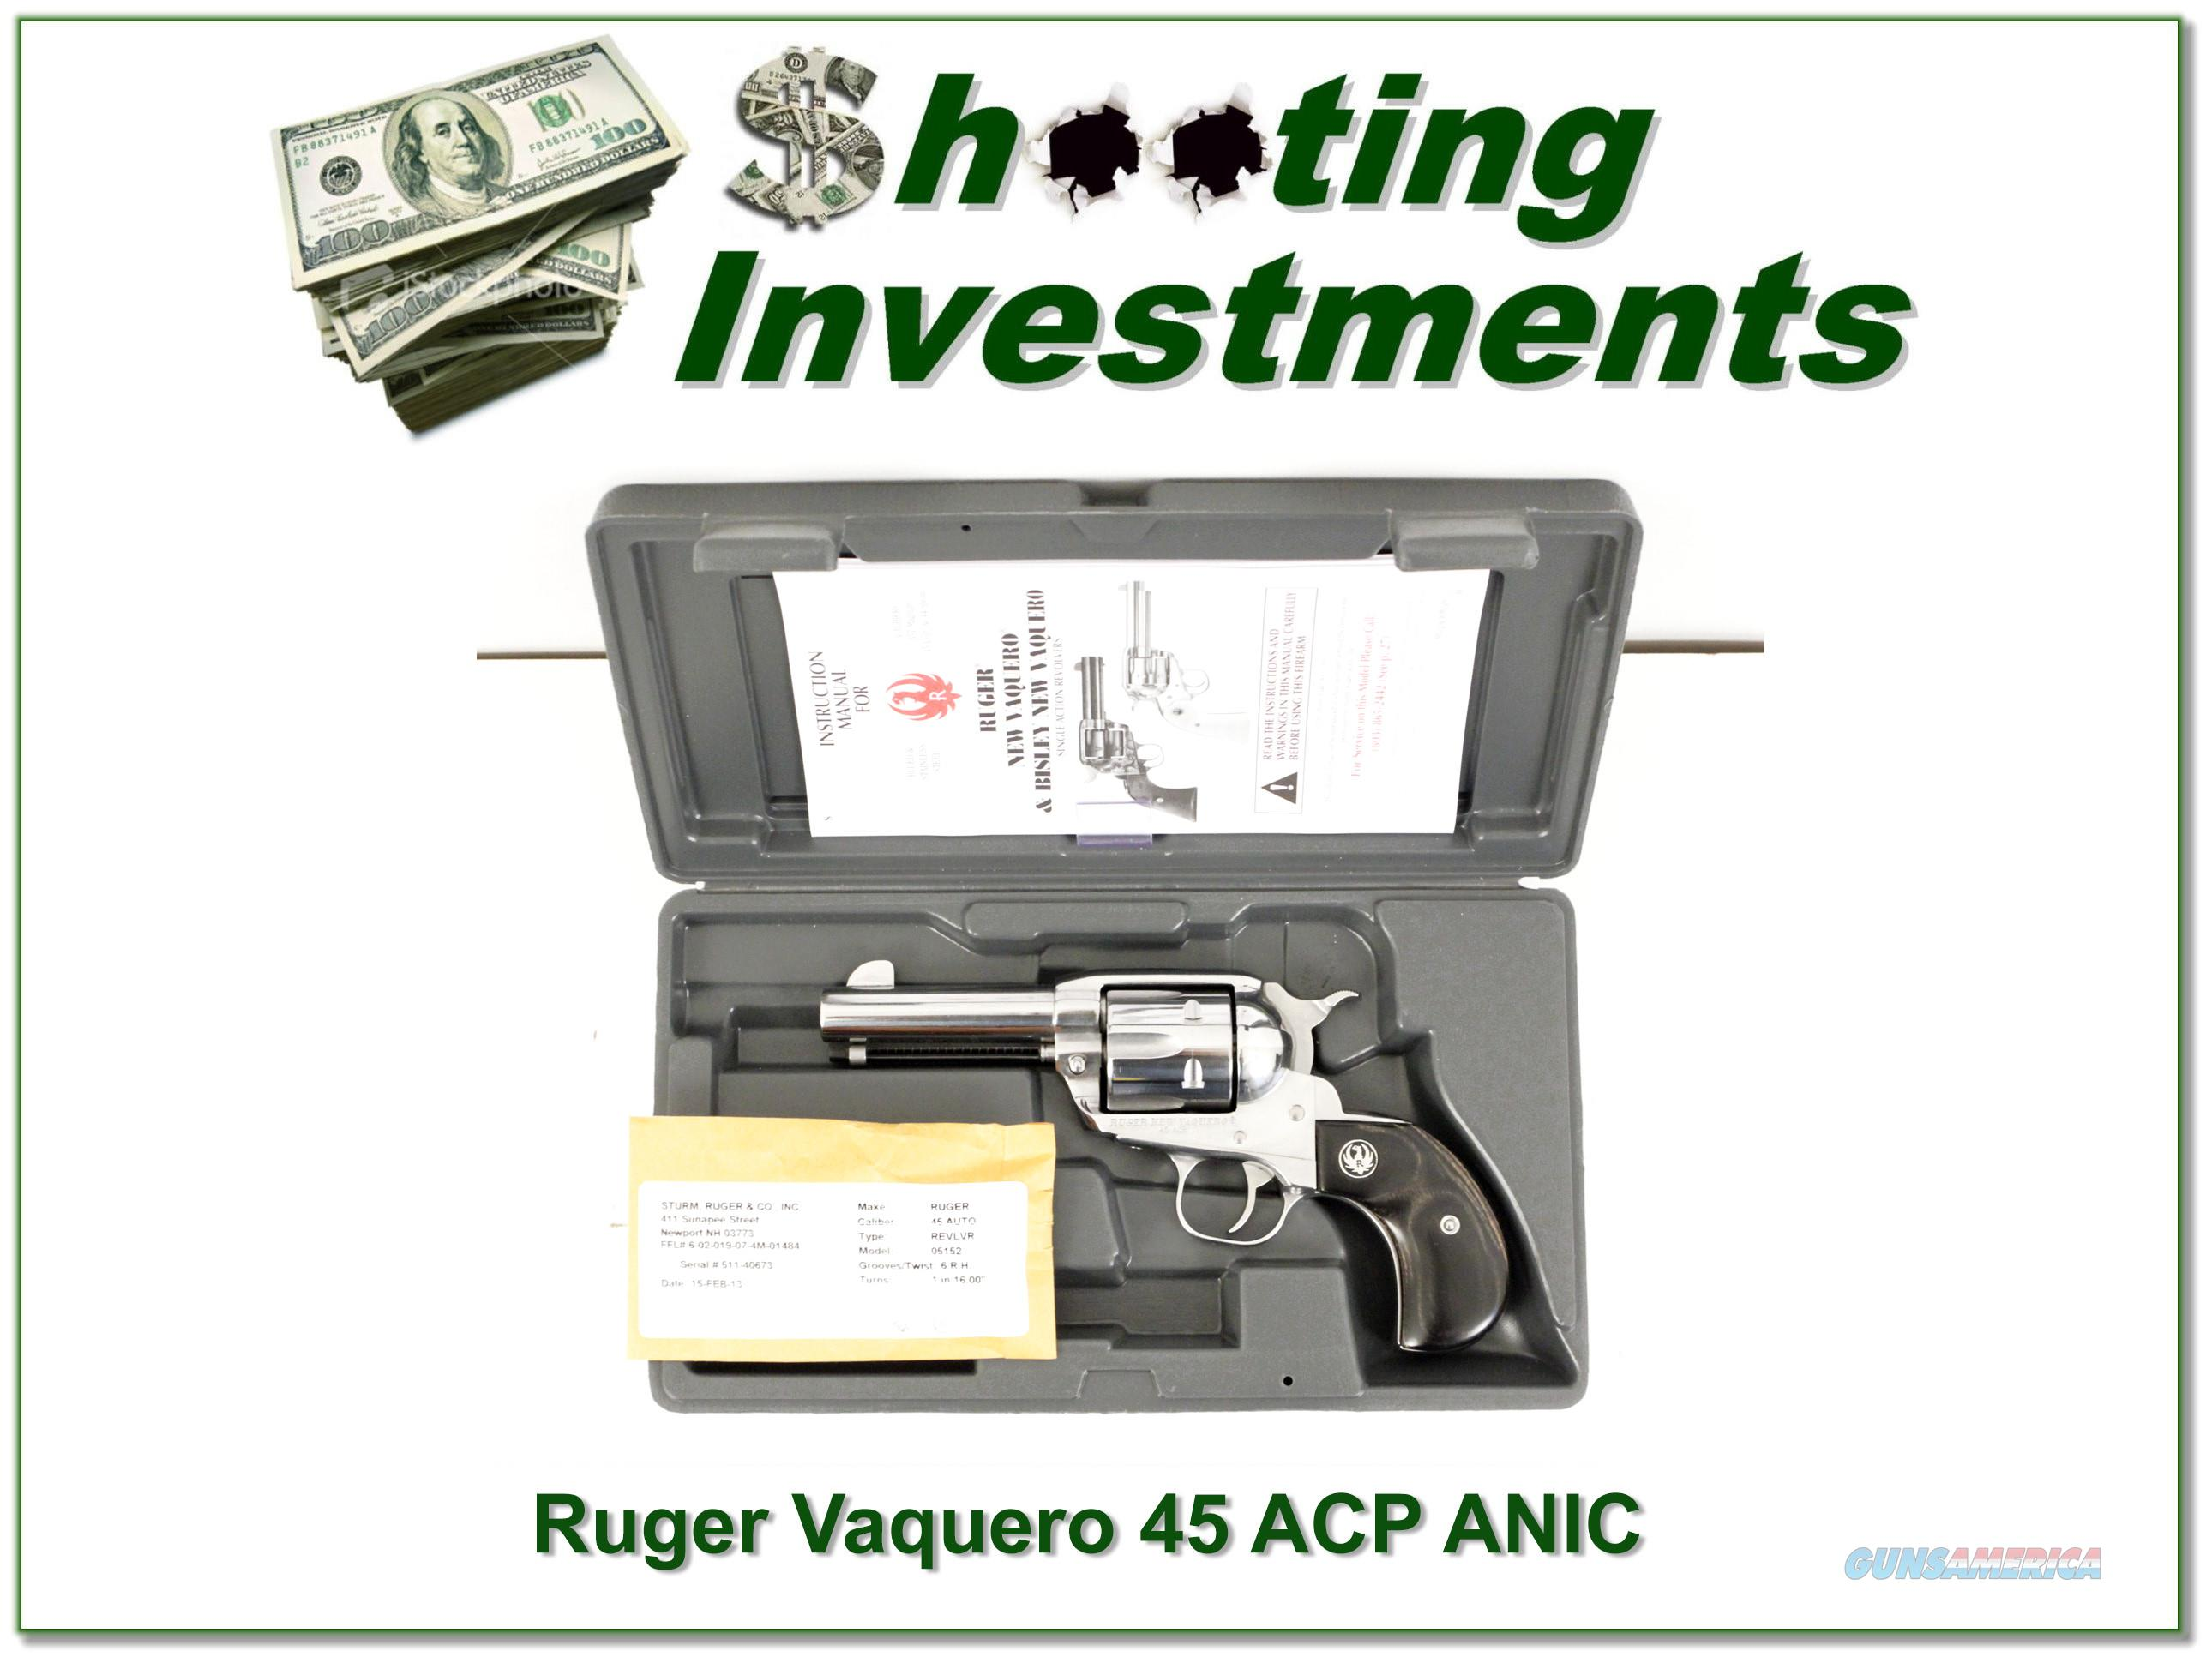 Ruger Vaquero Stainless 45 ACP NIC!  Guns > Pistols > Ruger Single Action Revolvers > Cowboy Action